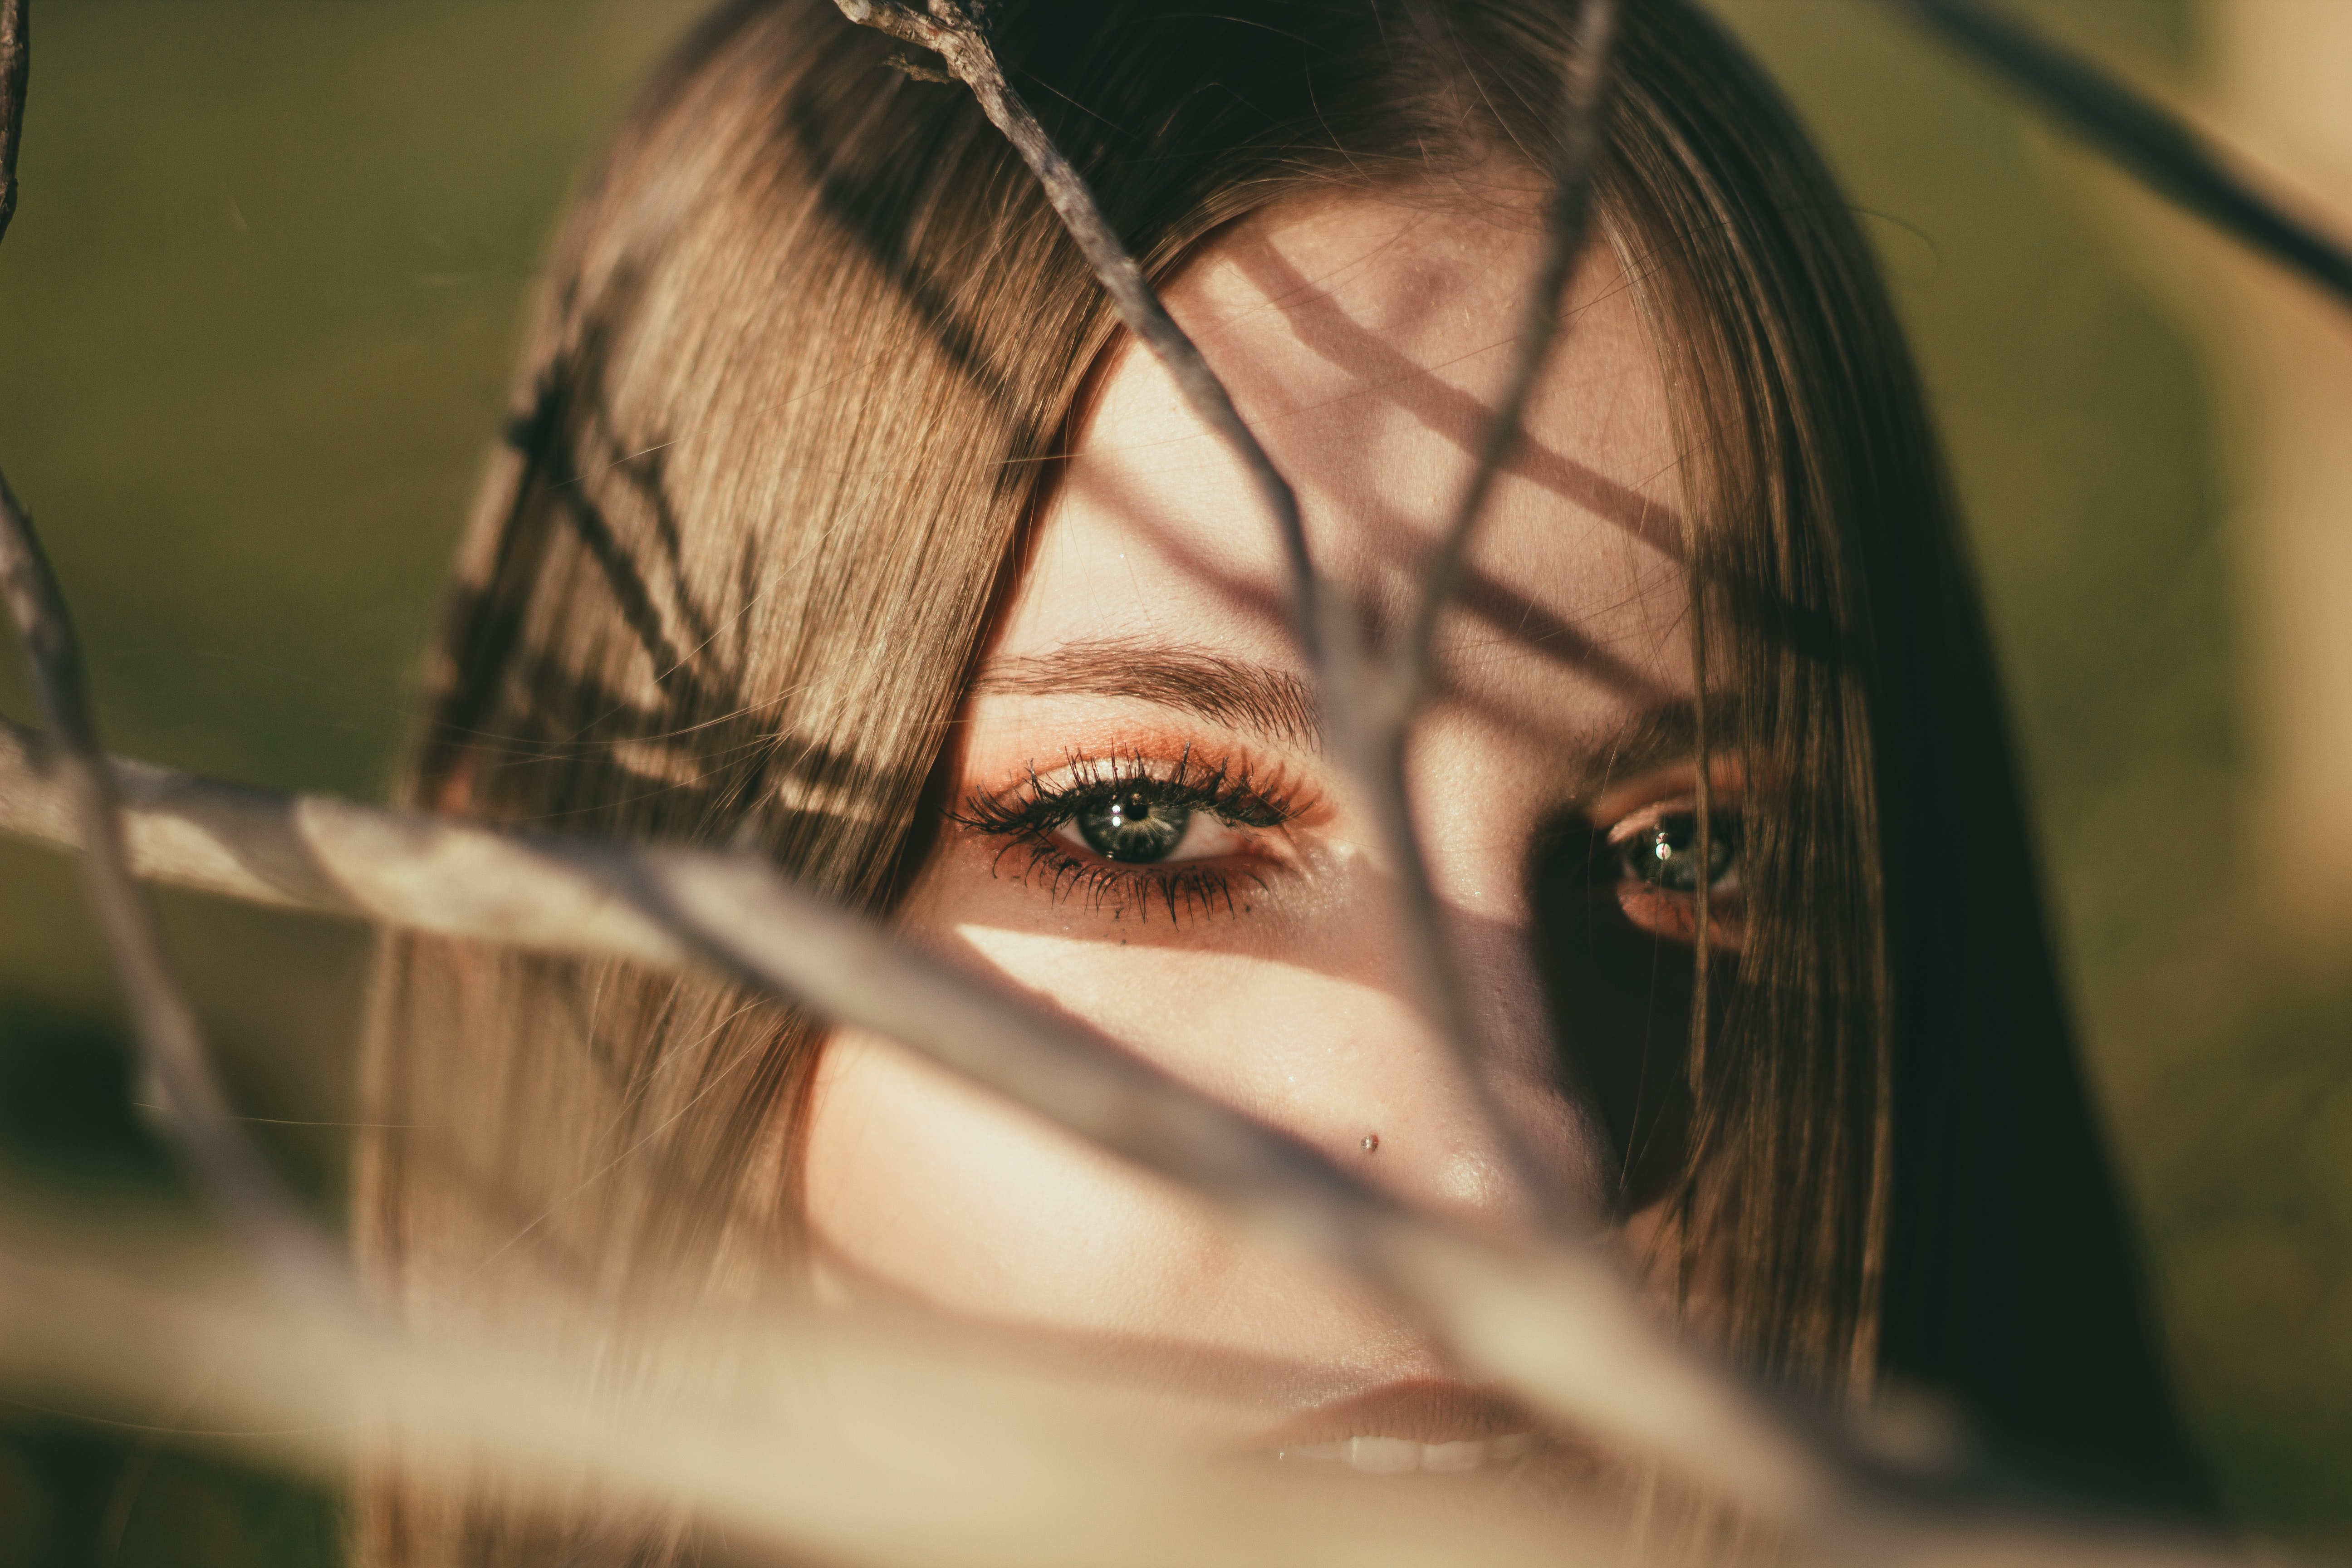 Woman with dramatic makeup peer through branches